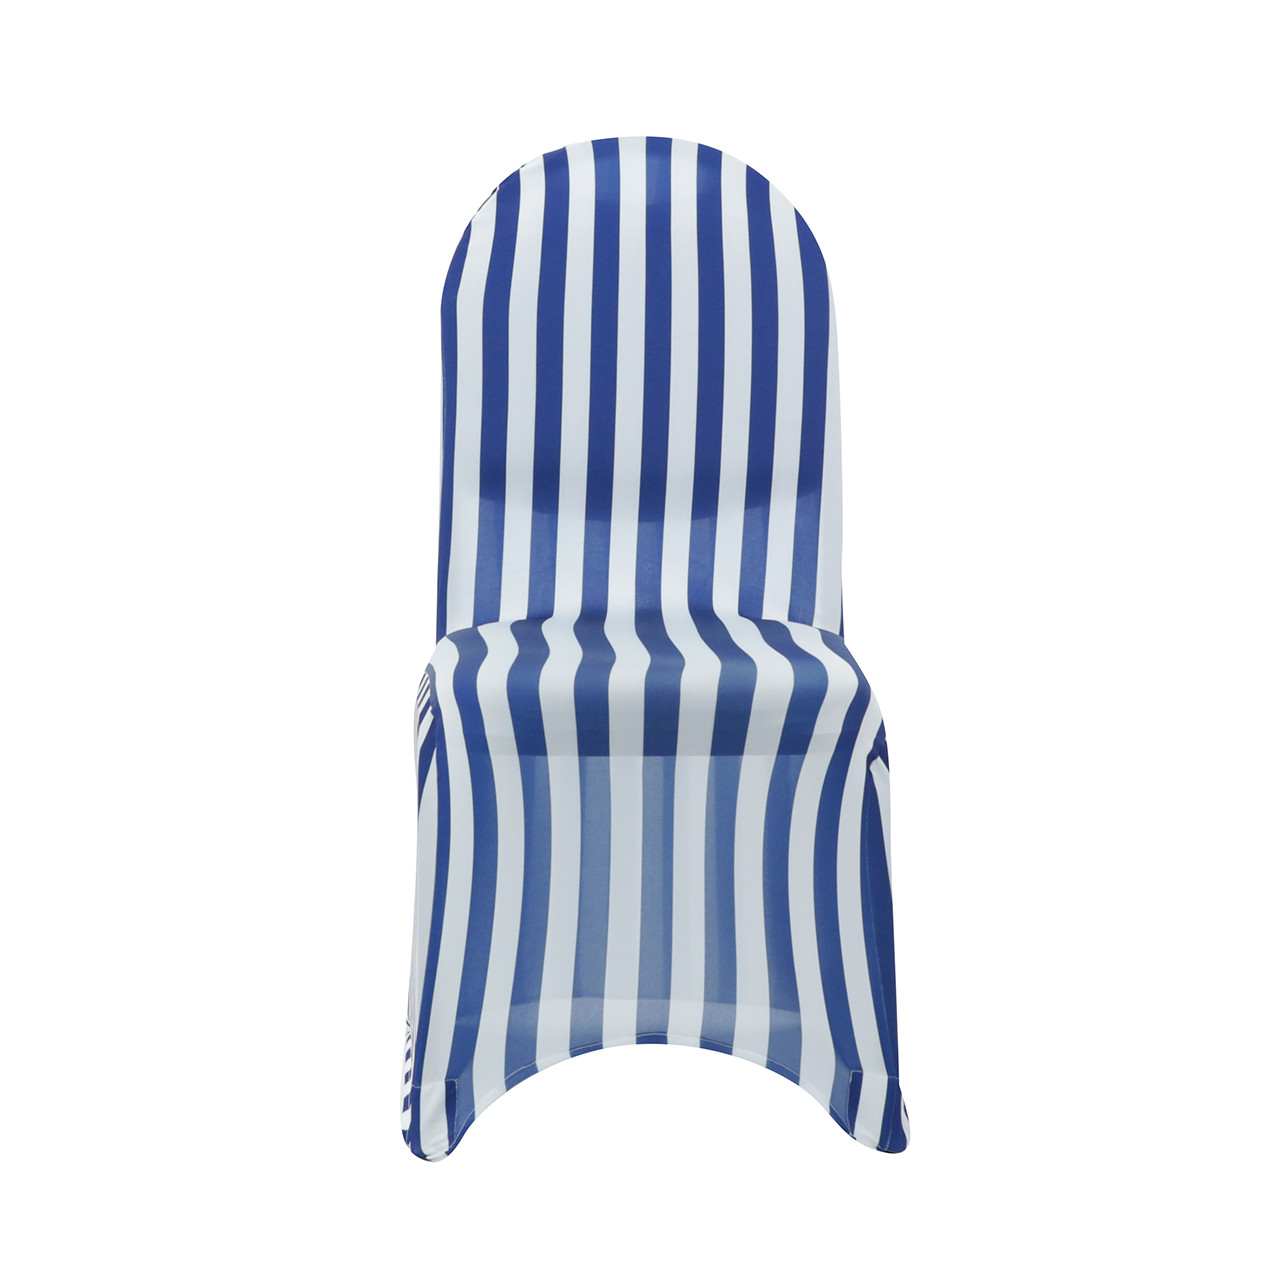 Incroyable ... White And Royal Blue Striped Spandex Chair Covers Wholesale